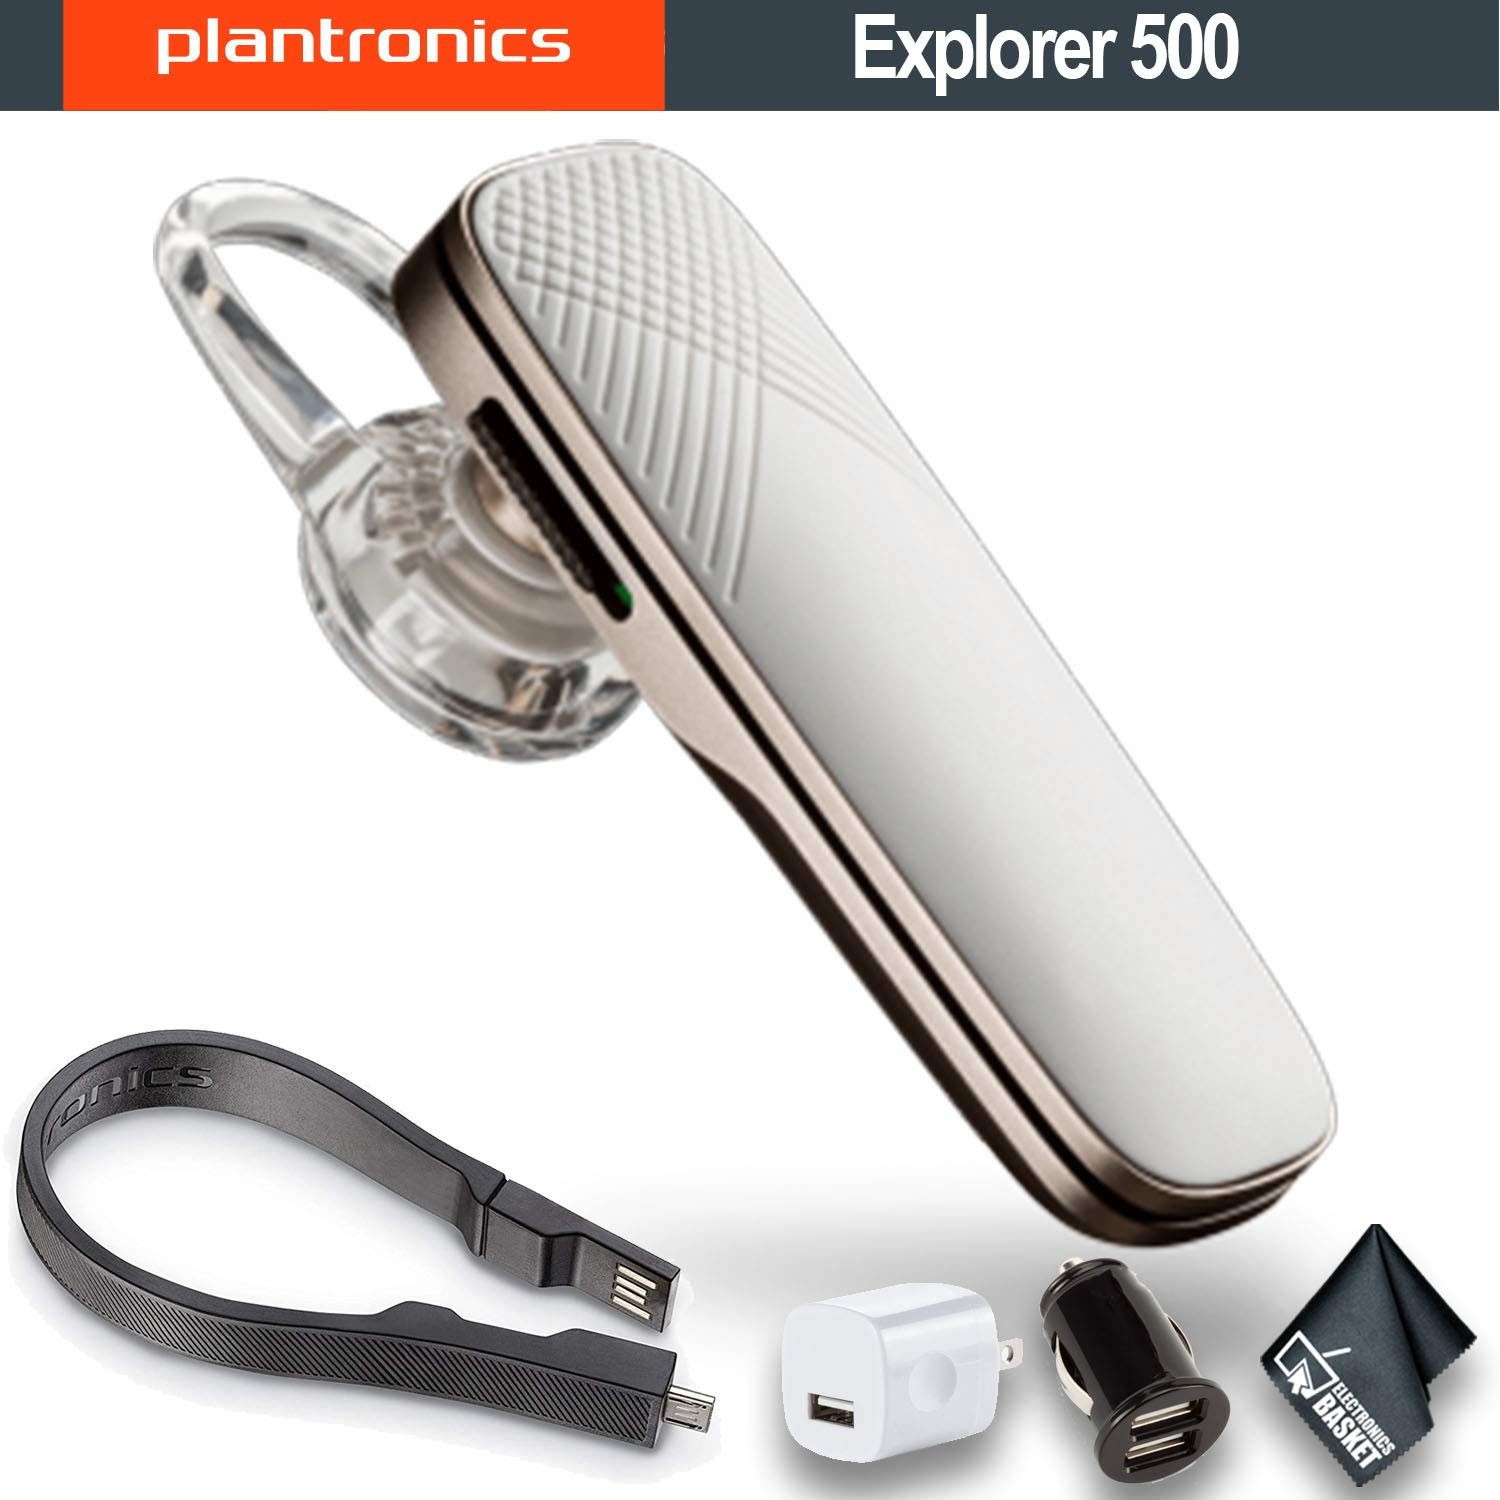 Plantronics Explorer 500 Bluetooth Headset (White) 203622-01 W/Dual USB Car Charger, USB Wall Charger - Essential Bundle